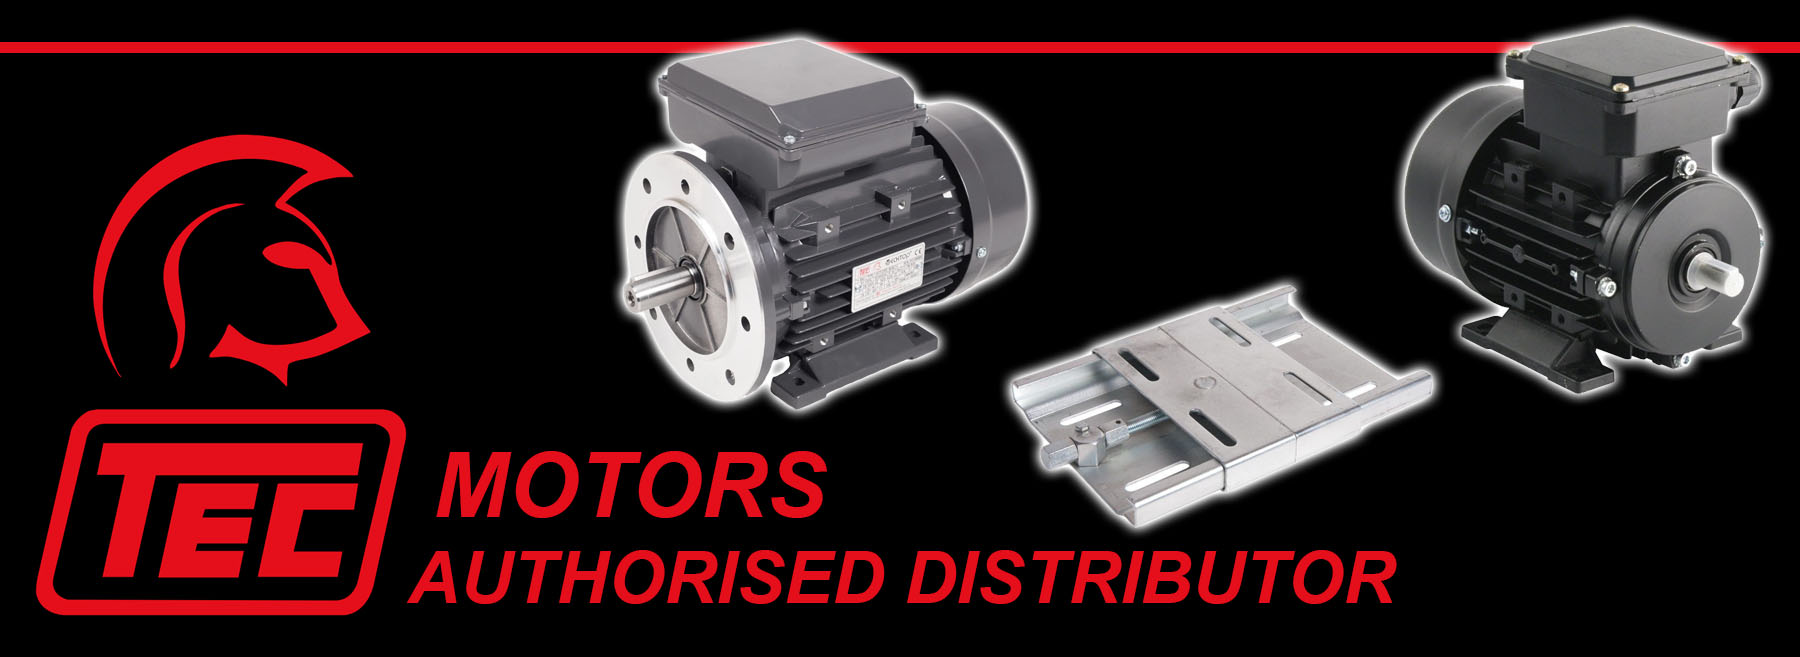 TEC Motors - Authorised Distributor